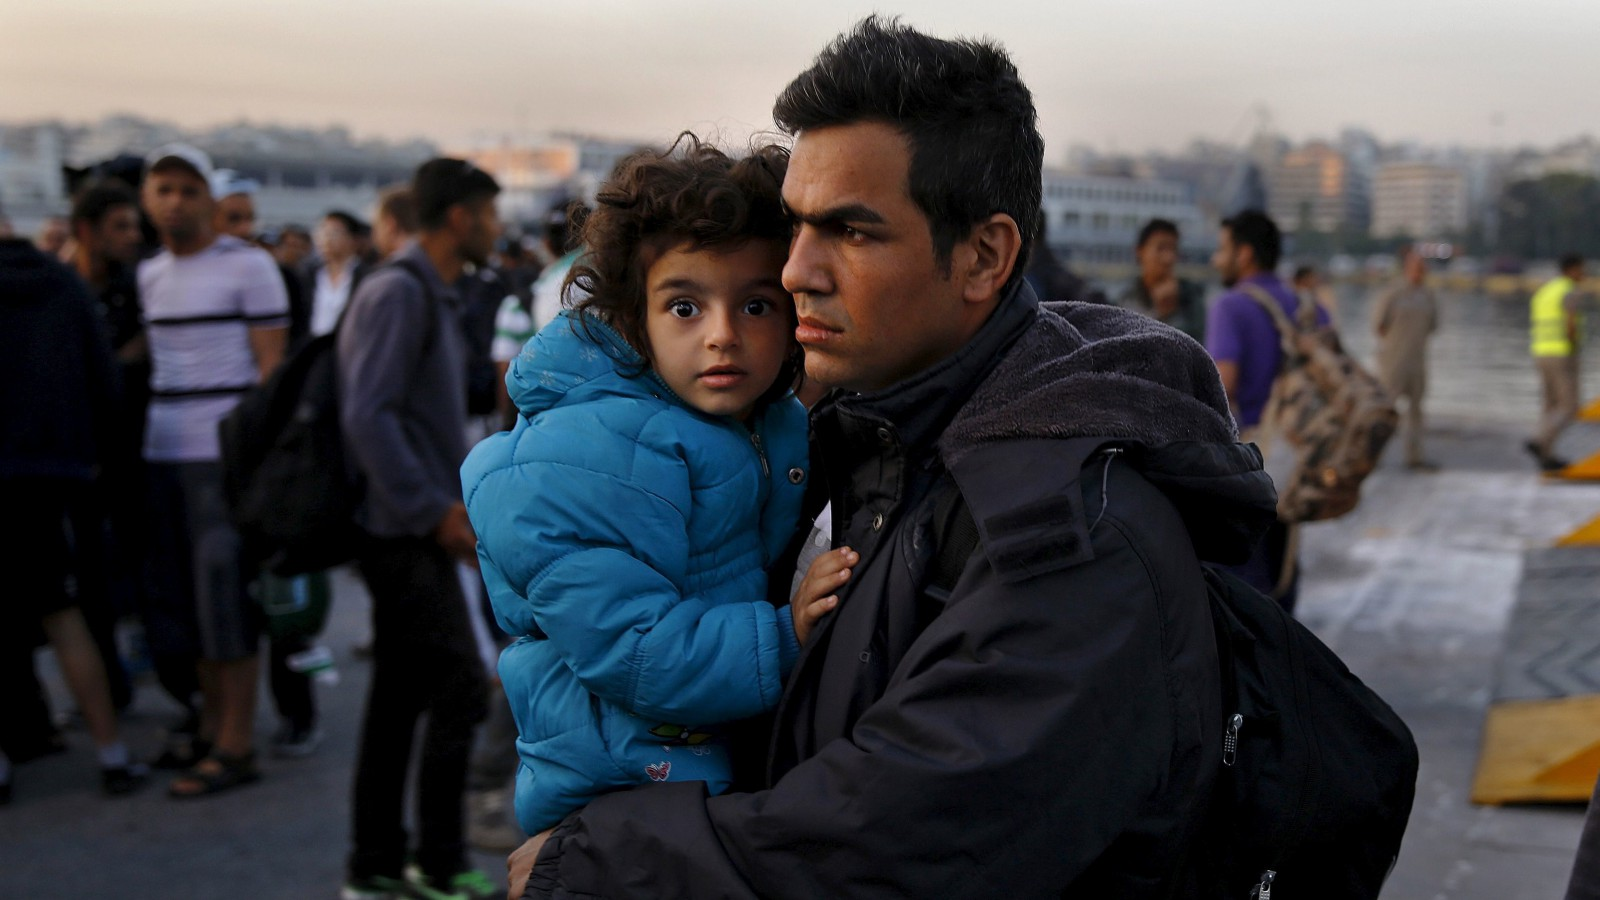 Syrian refugees disembark from a Greek ferry after arriving in the port of Piraeus near Athens June 14, 2015. Over 1,800 predominantly Syrian refugees and other immigrants who crossed the sea from the Turkish coast to the Greek island of Lesvos were ferried to Athens after the Greek authorities supplied them with temporary documents. An average of 600 migrants were arriving in Greece by sea each day, many of them fleeing poverty and conflicts in Syria, Iraq and Libya, at a time when the Athens government is facing its own economic crisis, said the U.N. refugee agency UNHCR. Around 42,000 migrants arrived in Greece this year, six times the same period last year, the UNHCR said. REUTERS/Yannis Behrakis - RTX1GEOB